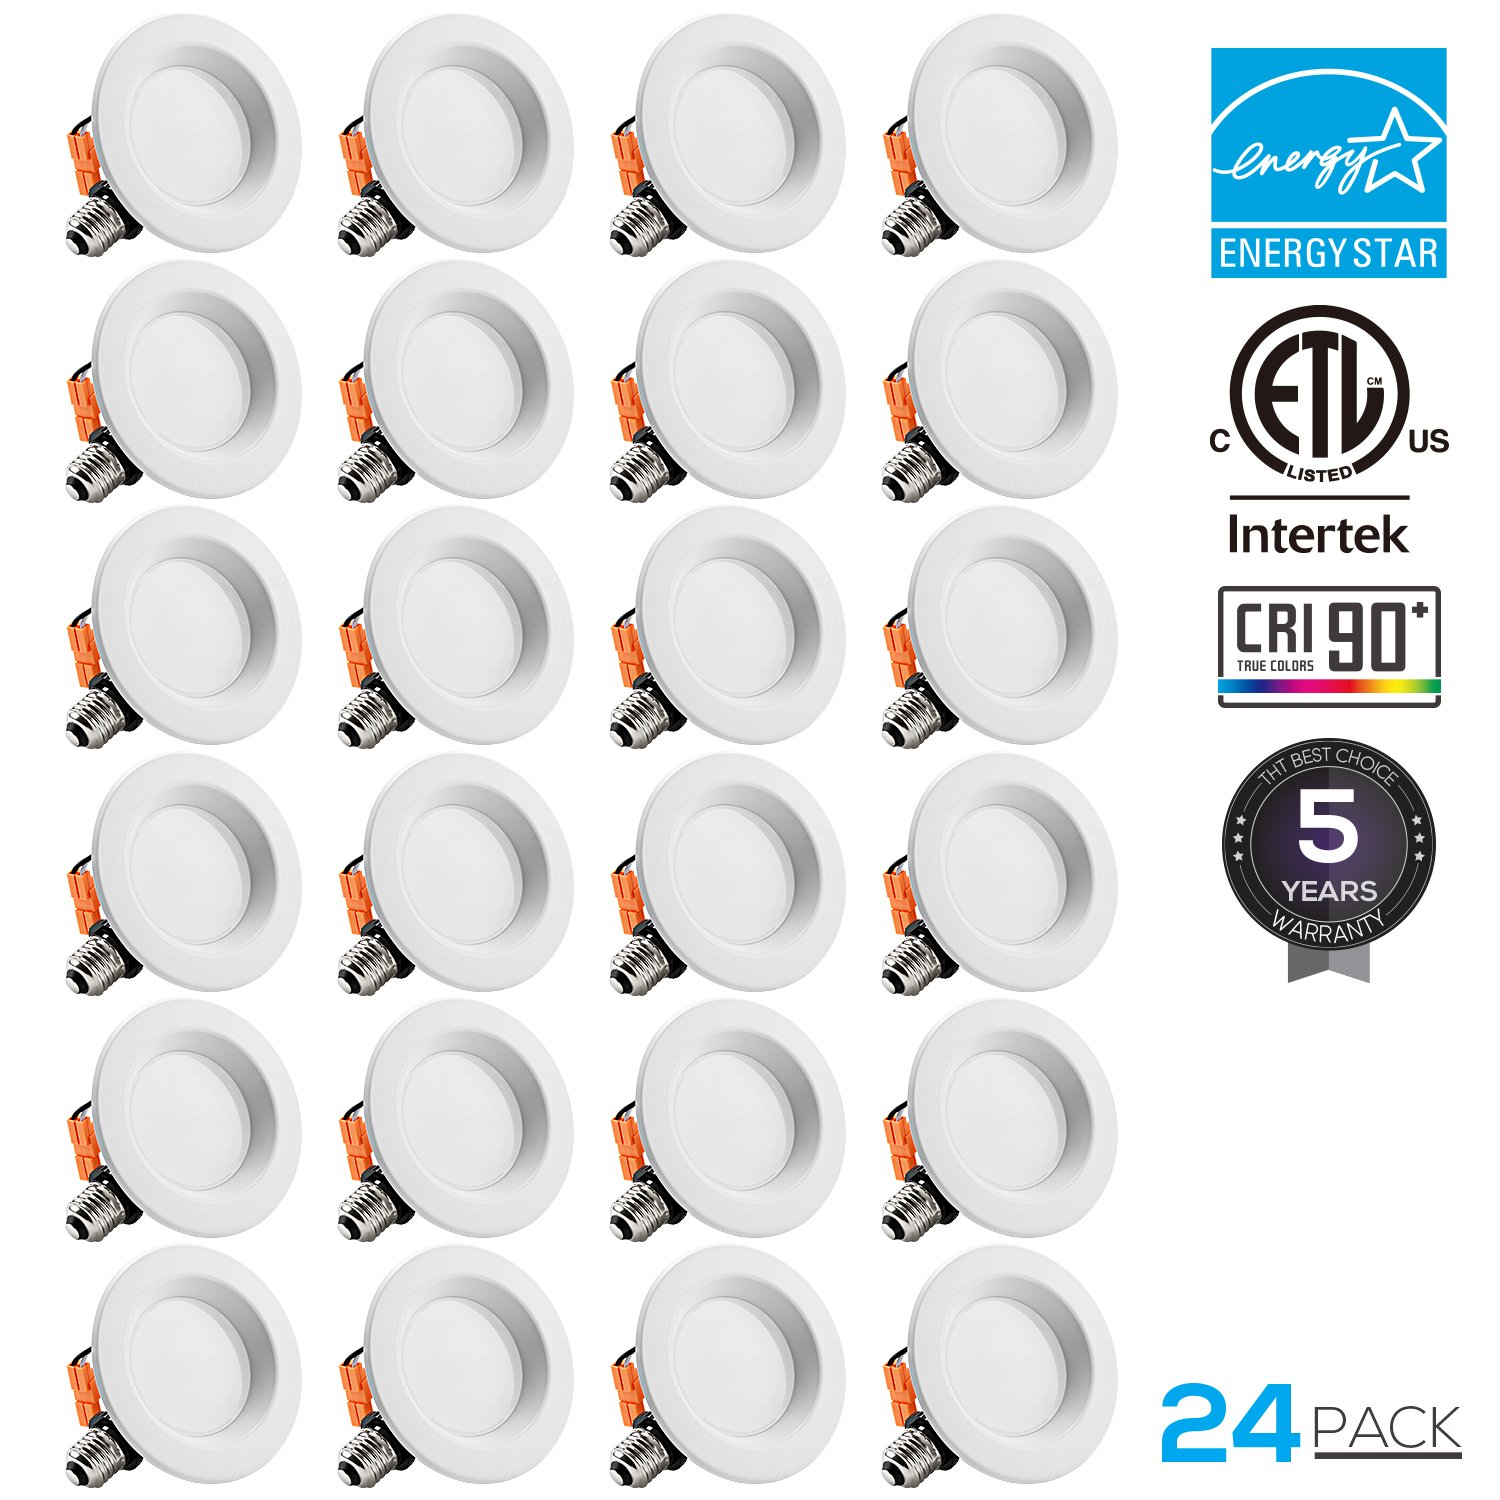 TORCHSTAR 24-PACK 4 inch Dimmable Recessed LED Downlight, 10W (65W Equivalent), CRI 90+, ENERGY STAR, 5000K Daylight, 700lm, LED Retrofit Lighting Fixture, 5 YEARS WARRANTY by TORCHSTAR (Image #1)